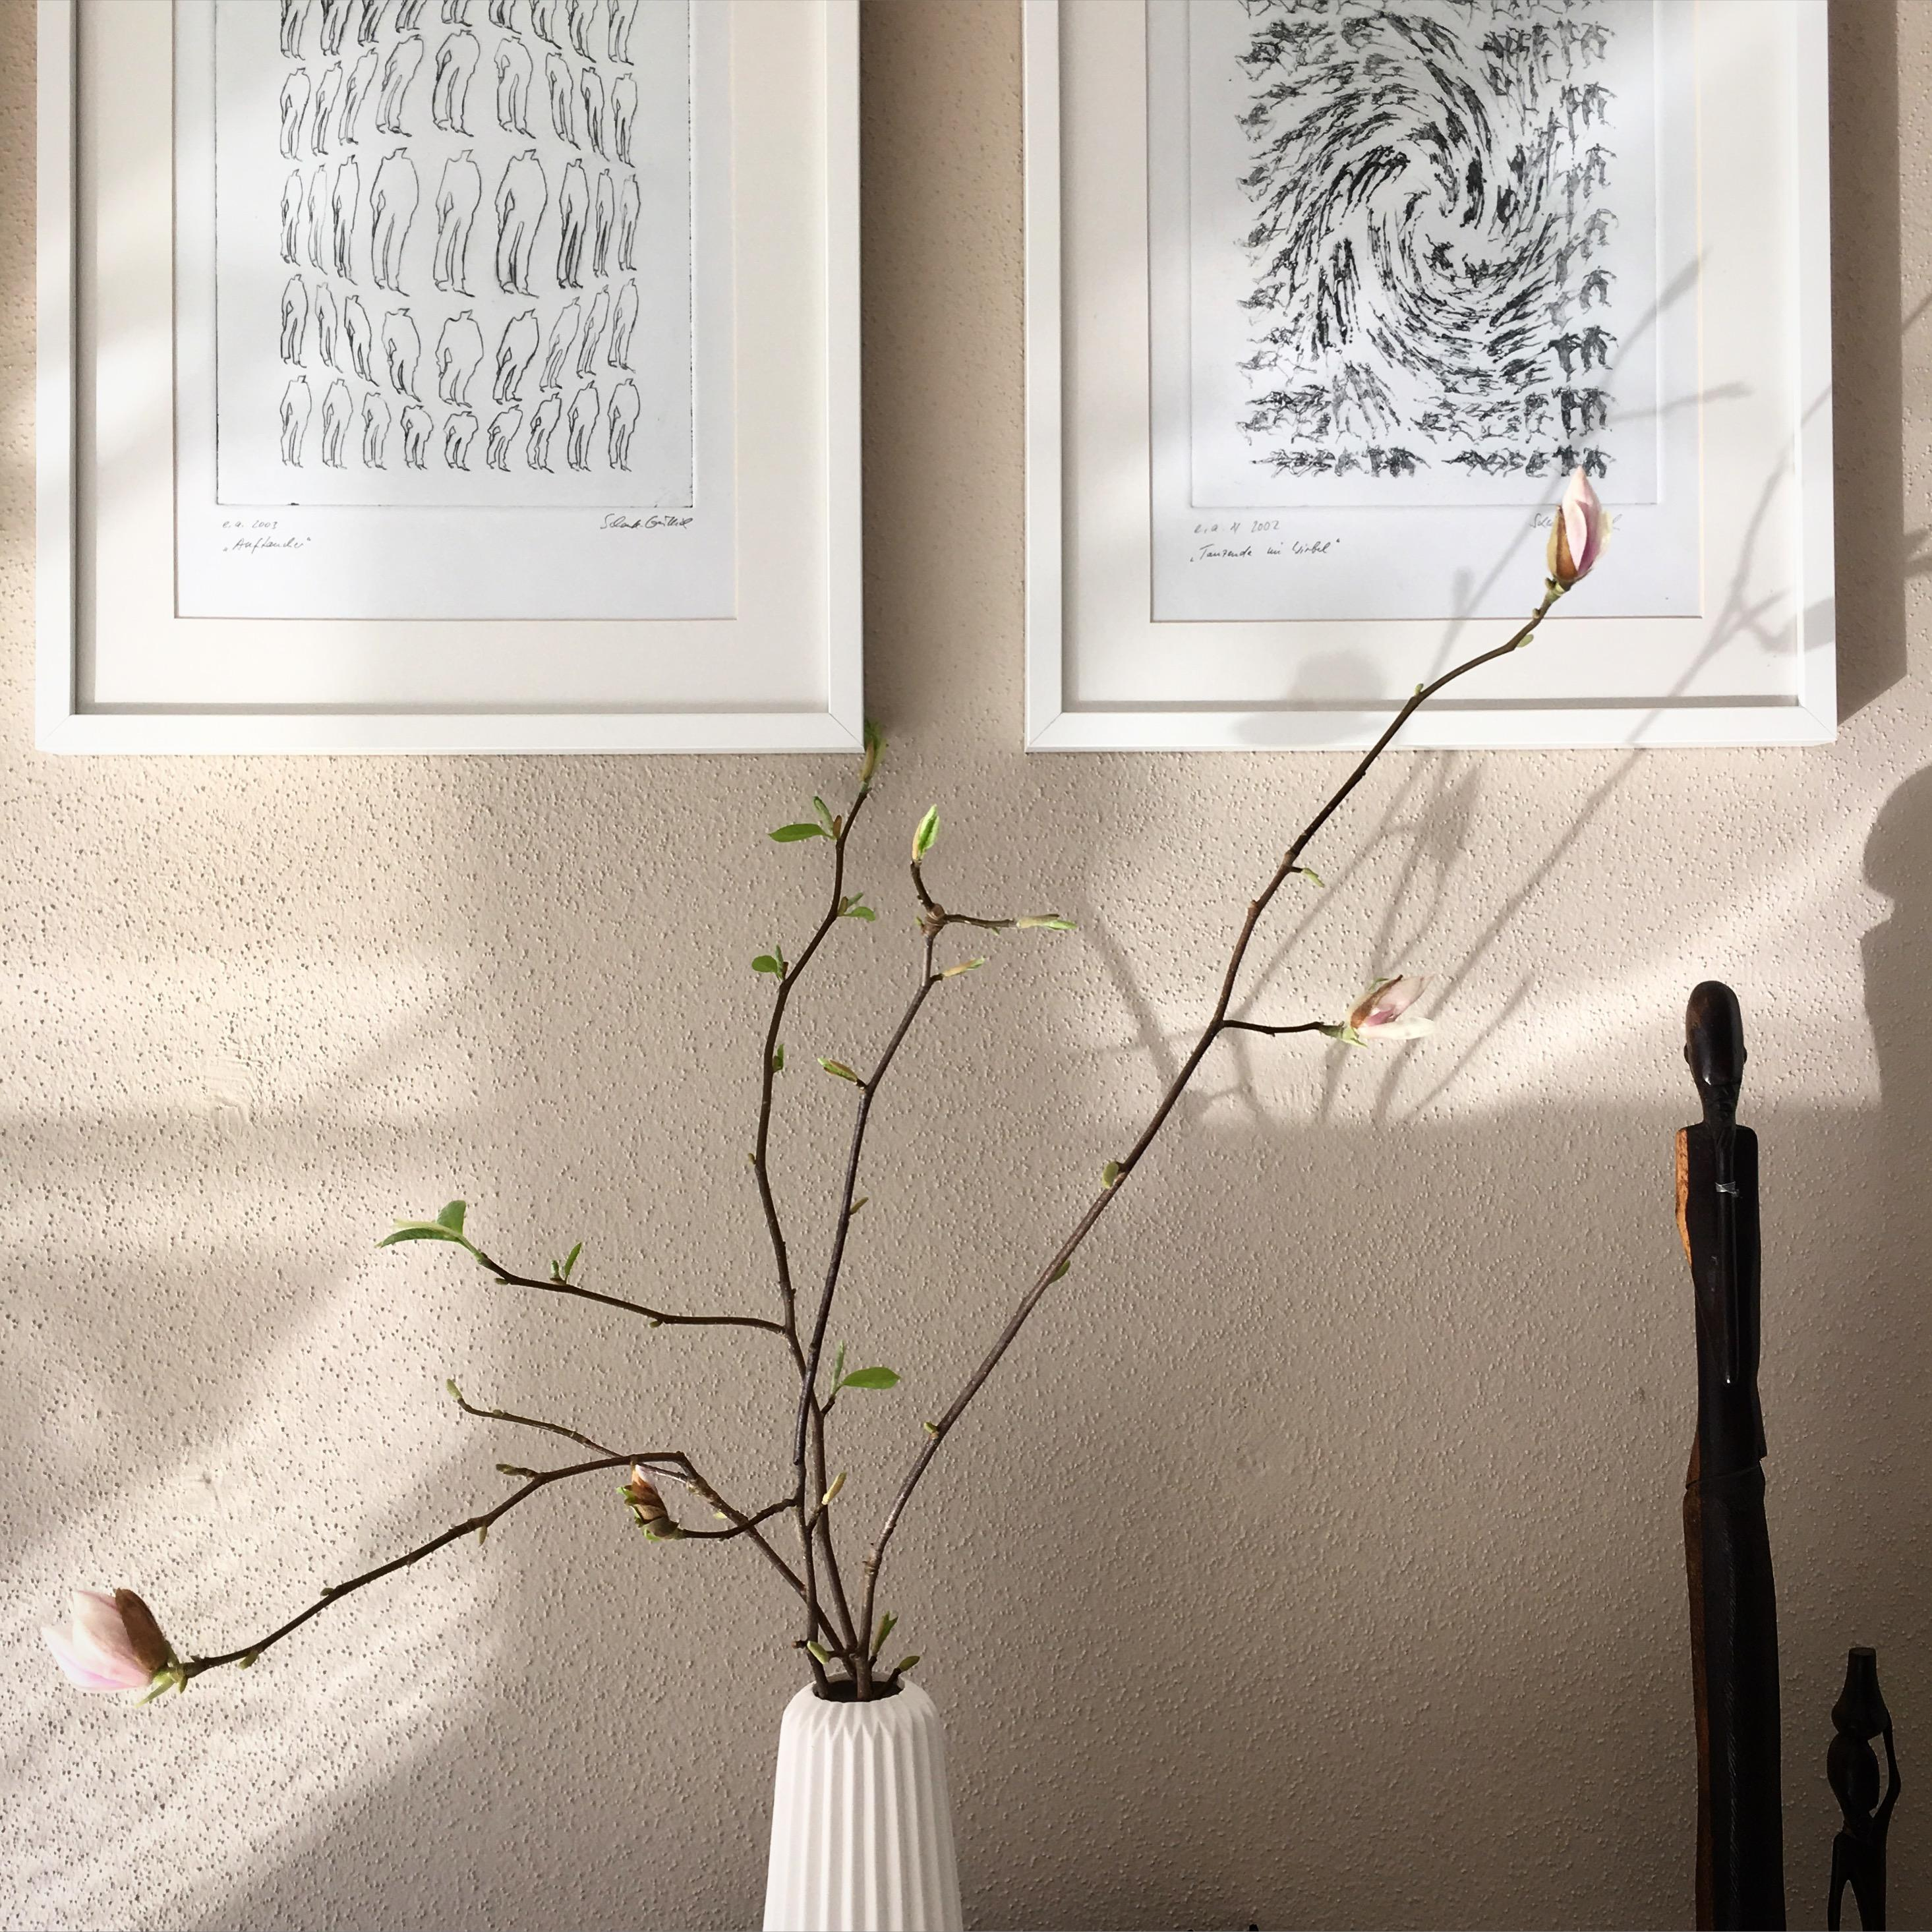 Magnolie #bilder ©ALL ABOUT DESIGN by Christina Harmsen